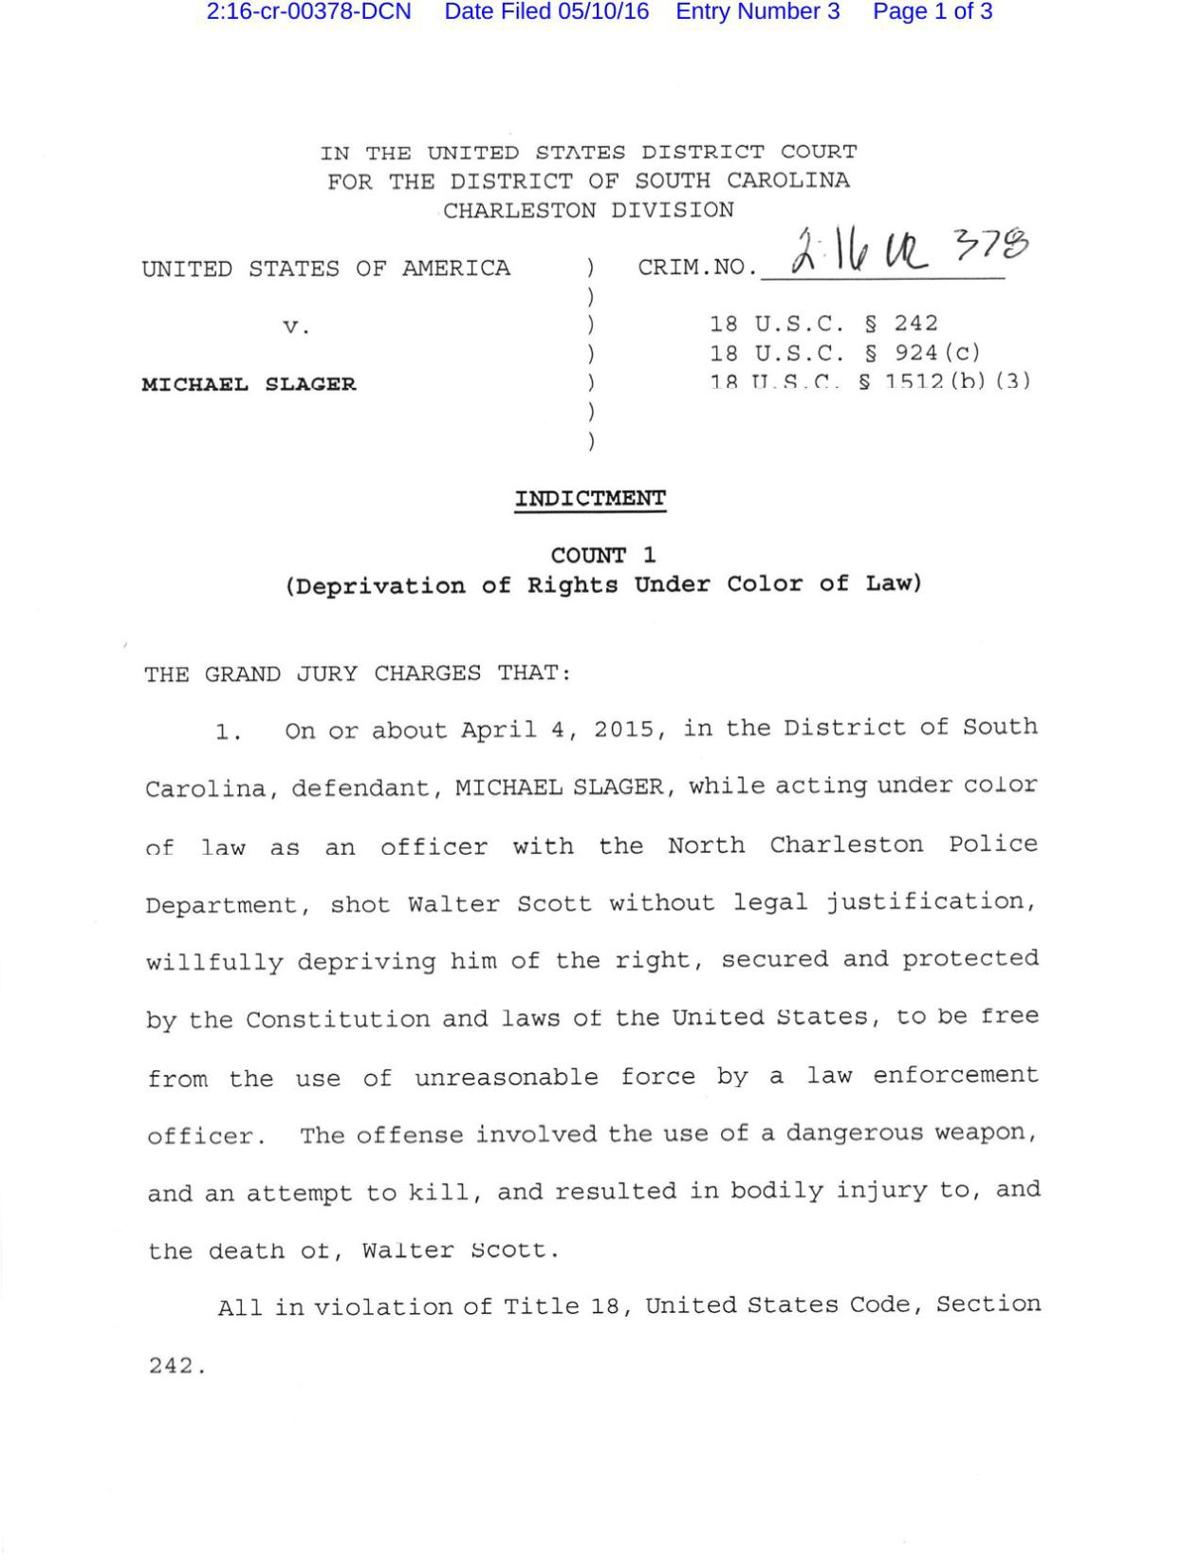 Michael Slager indictment